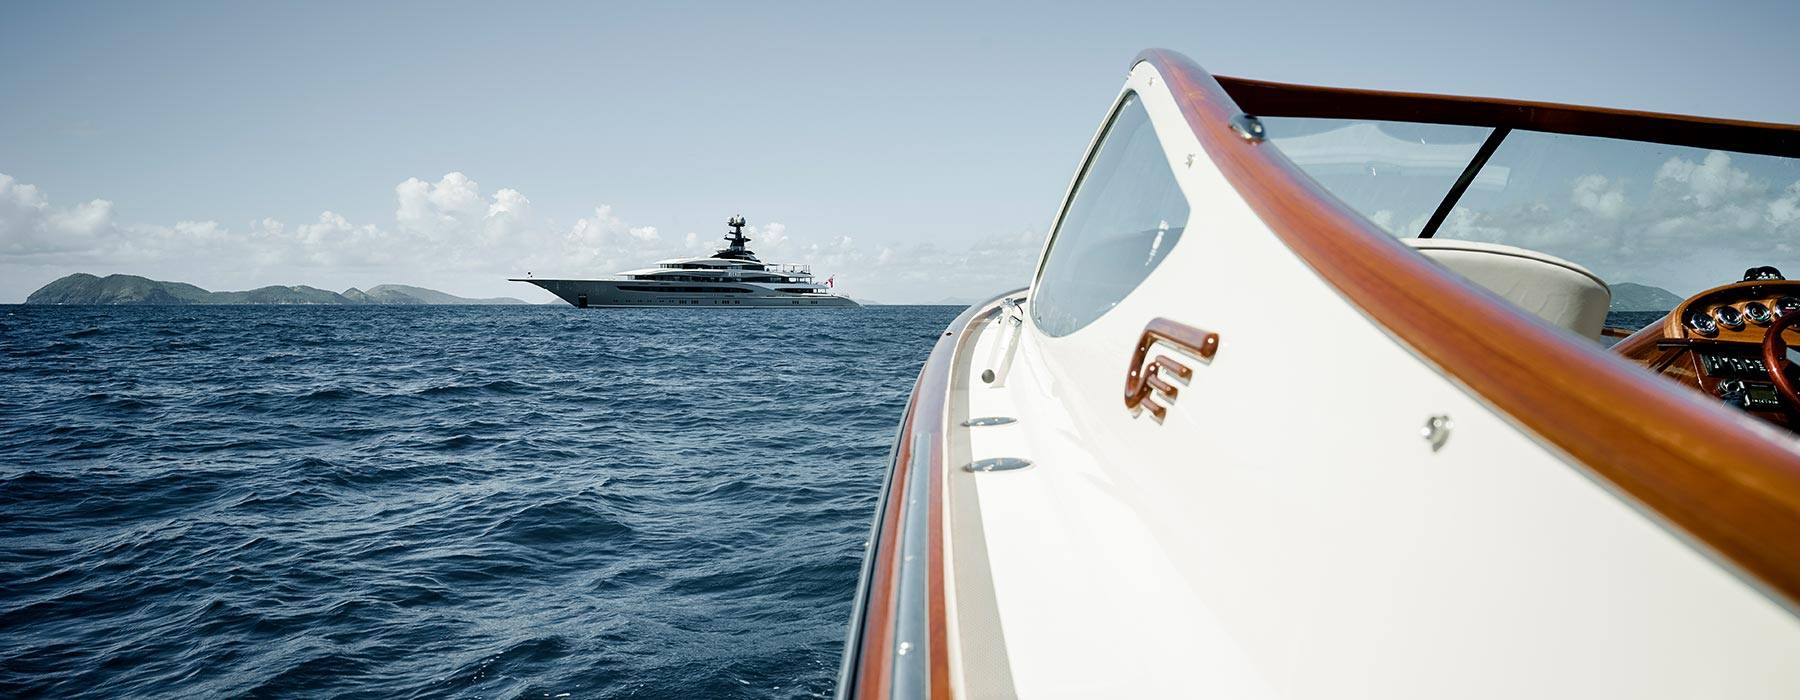 Expert Luxury Yacht for Sale & Purchase